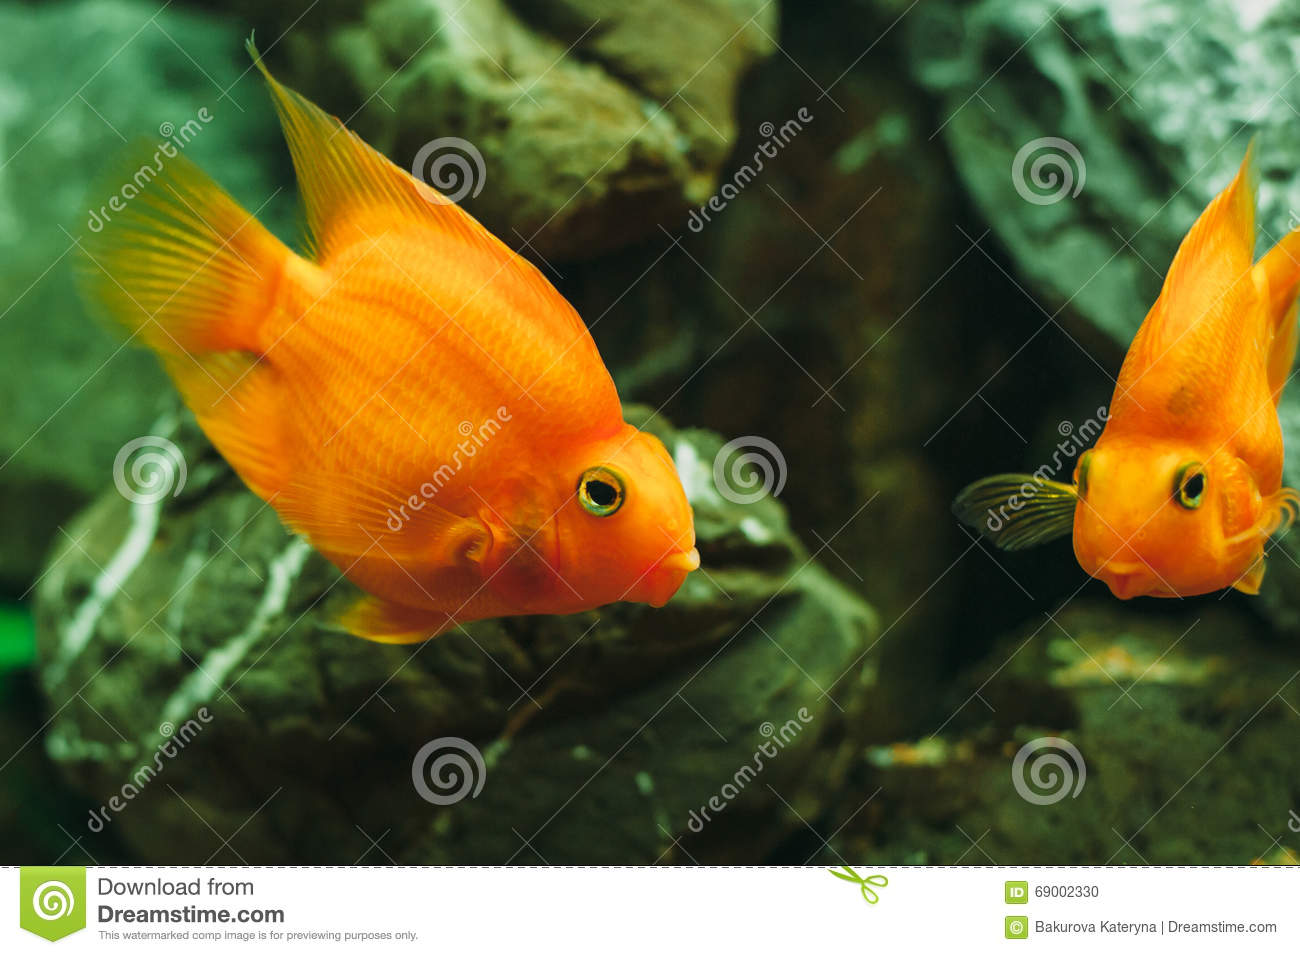 Poissons d 39 aquarium poisson rouge photo stock image for Aquarium poisson rouge taille